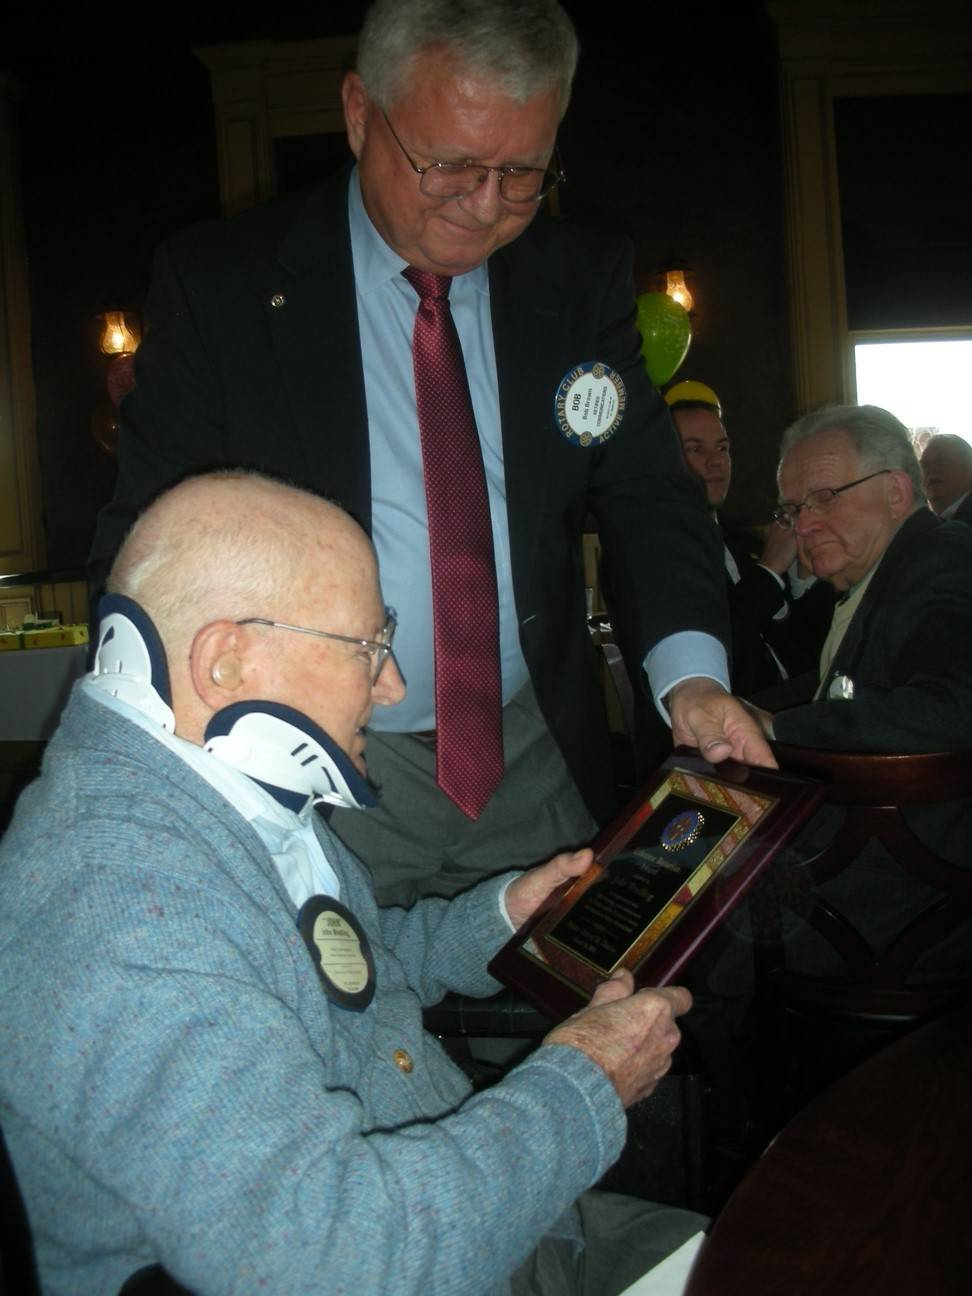 In March, Rotary Club of St. Charles President Bob Brown presents John H. Wredling a Lifetime Rotarian Award to honor Wredling for his service and inaugurate the John H. Wredling Scholarship Award.